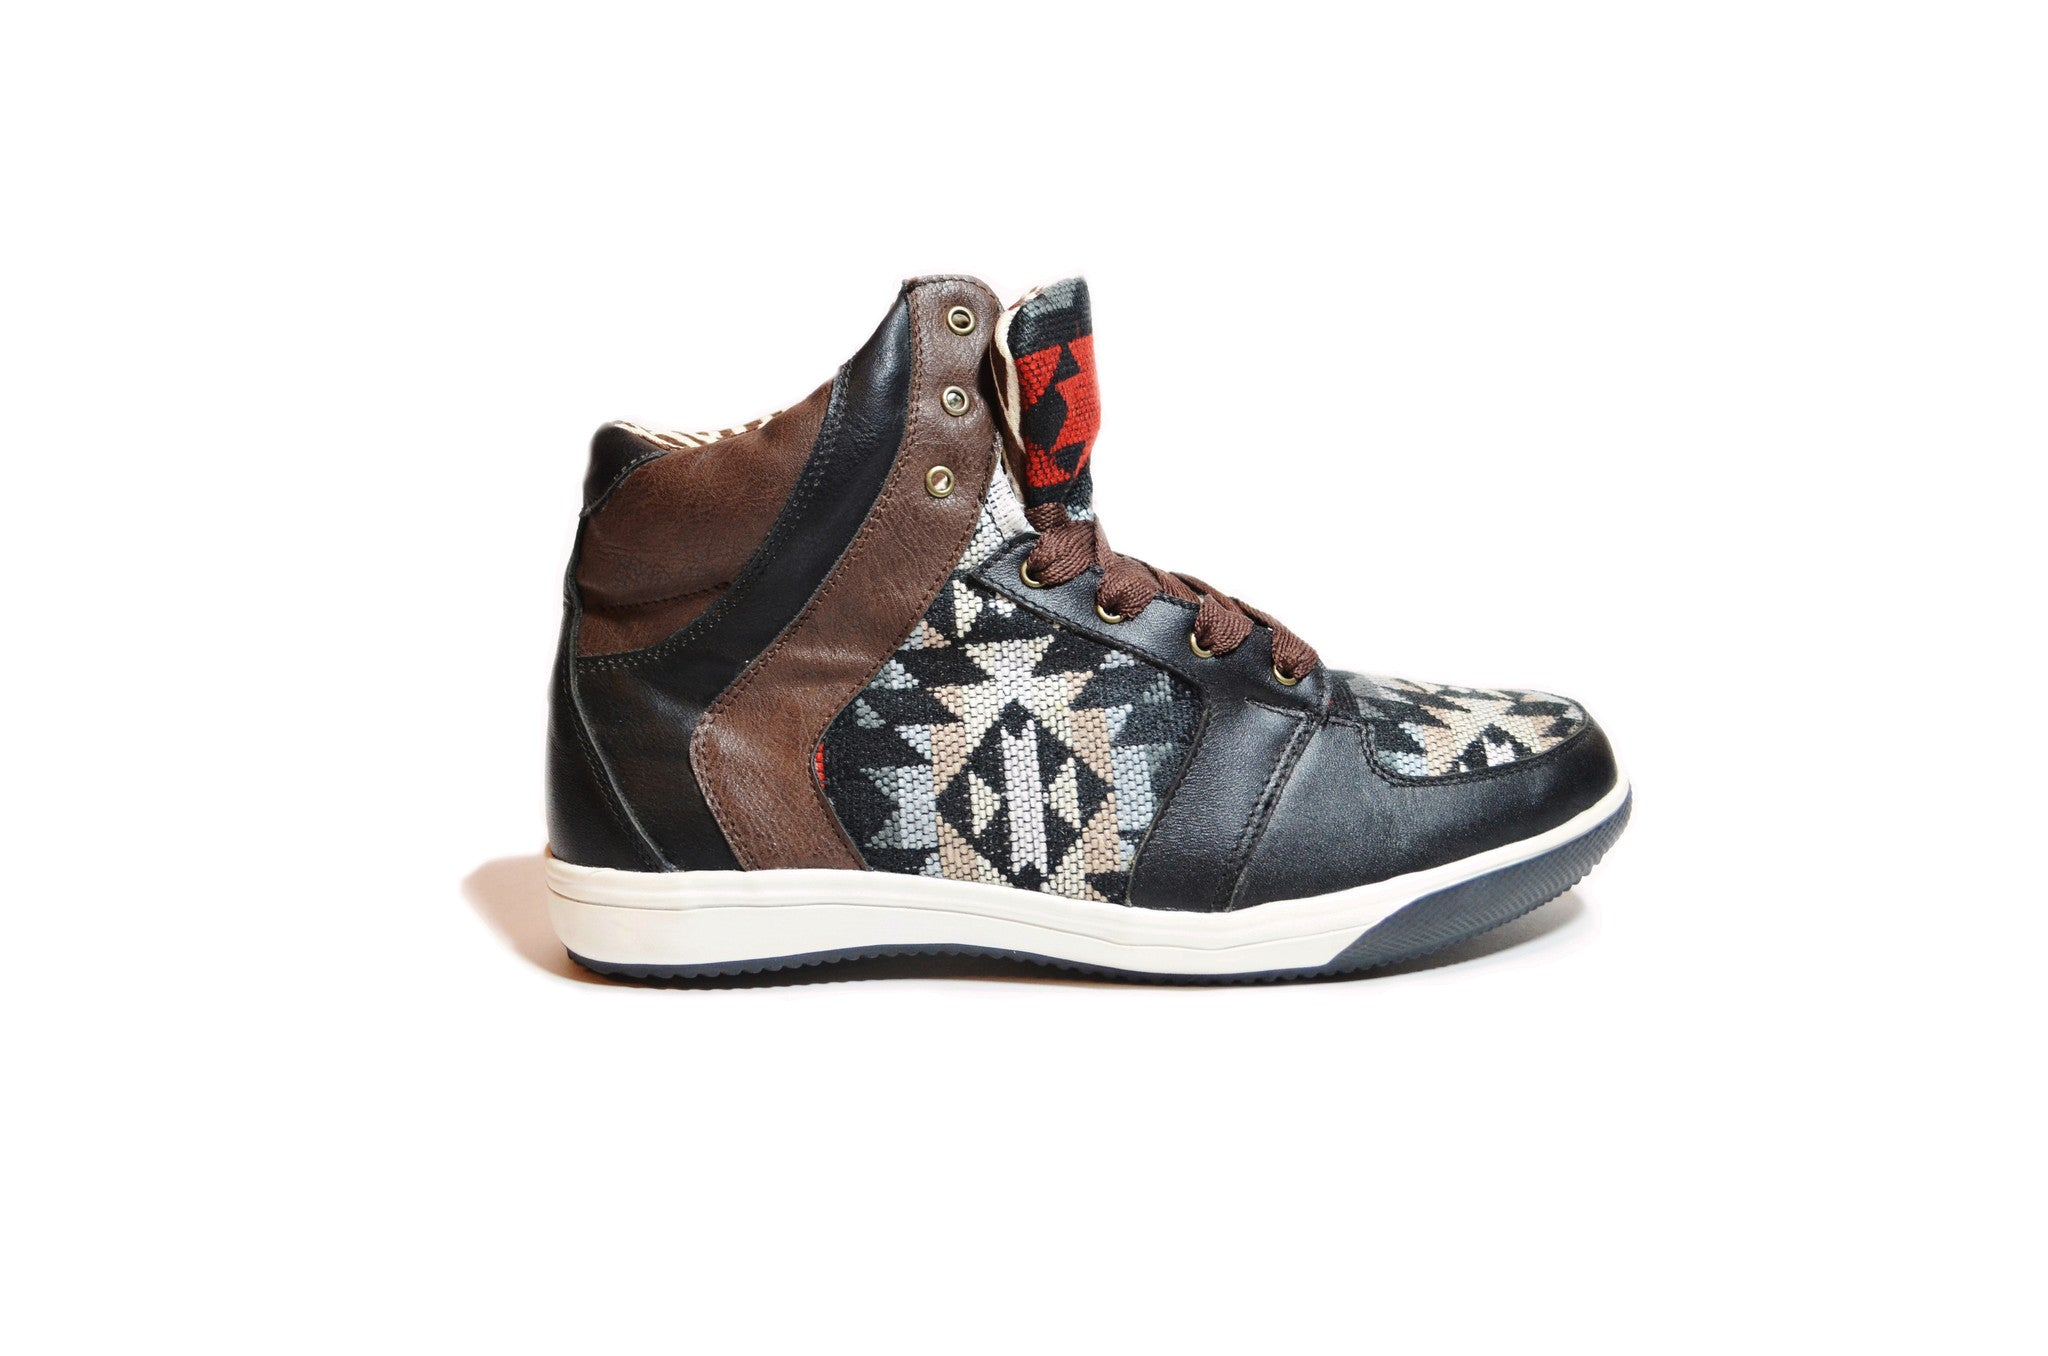 Woven High Top Sneakers